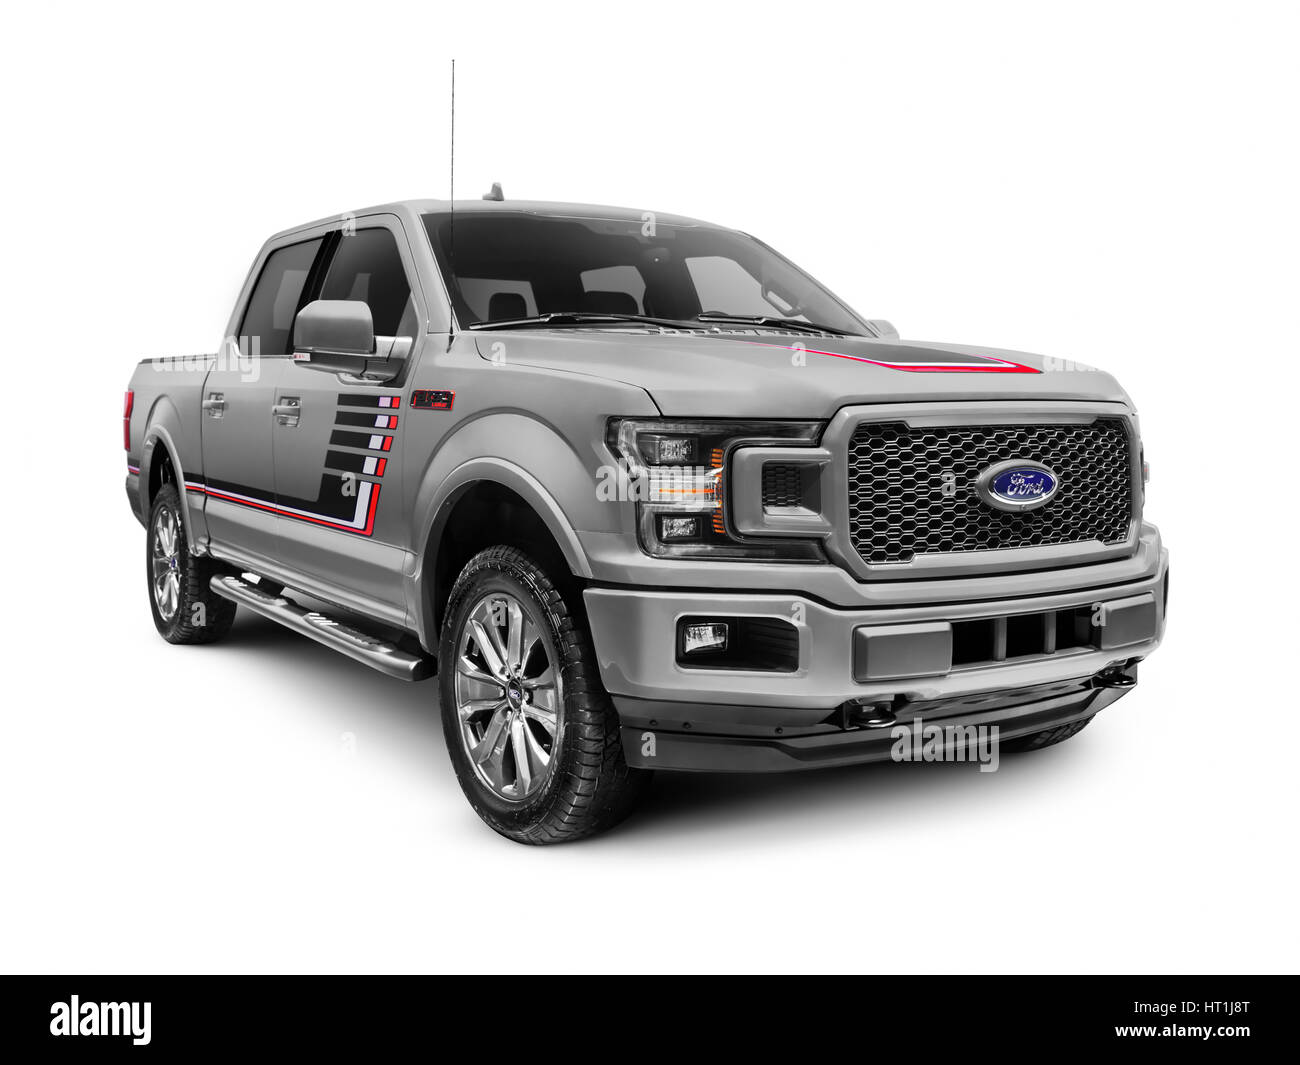 gray 2018 ford f 150 lariat pickup truck isoliert auf. Black Bedroom Furniture Sets. Home Design Ideas